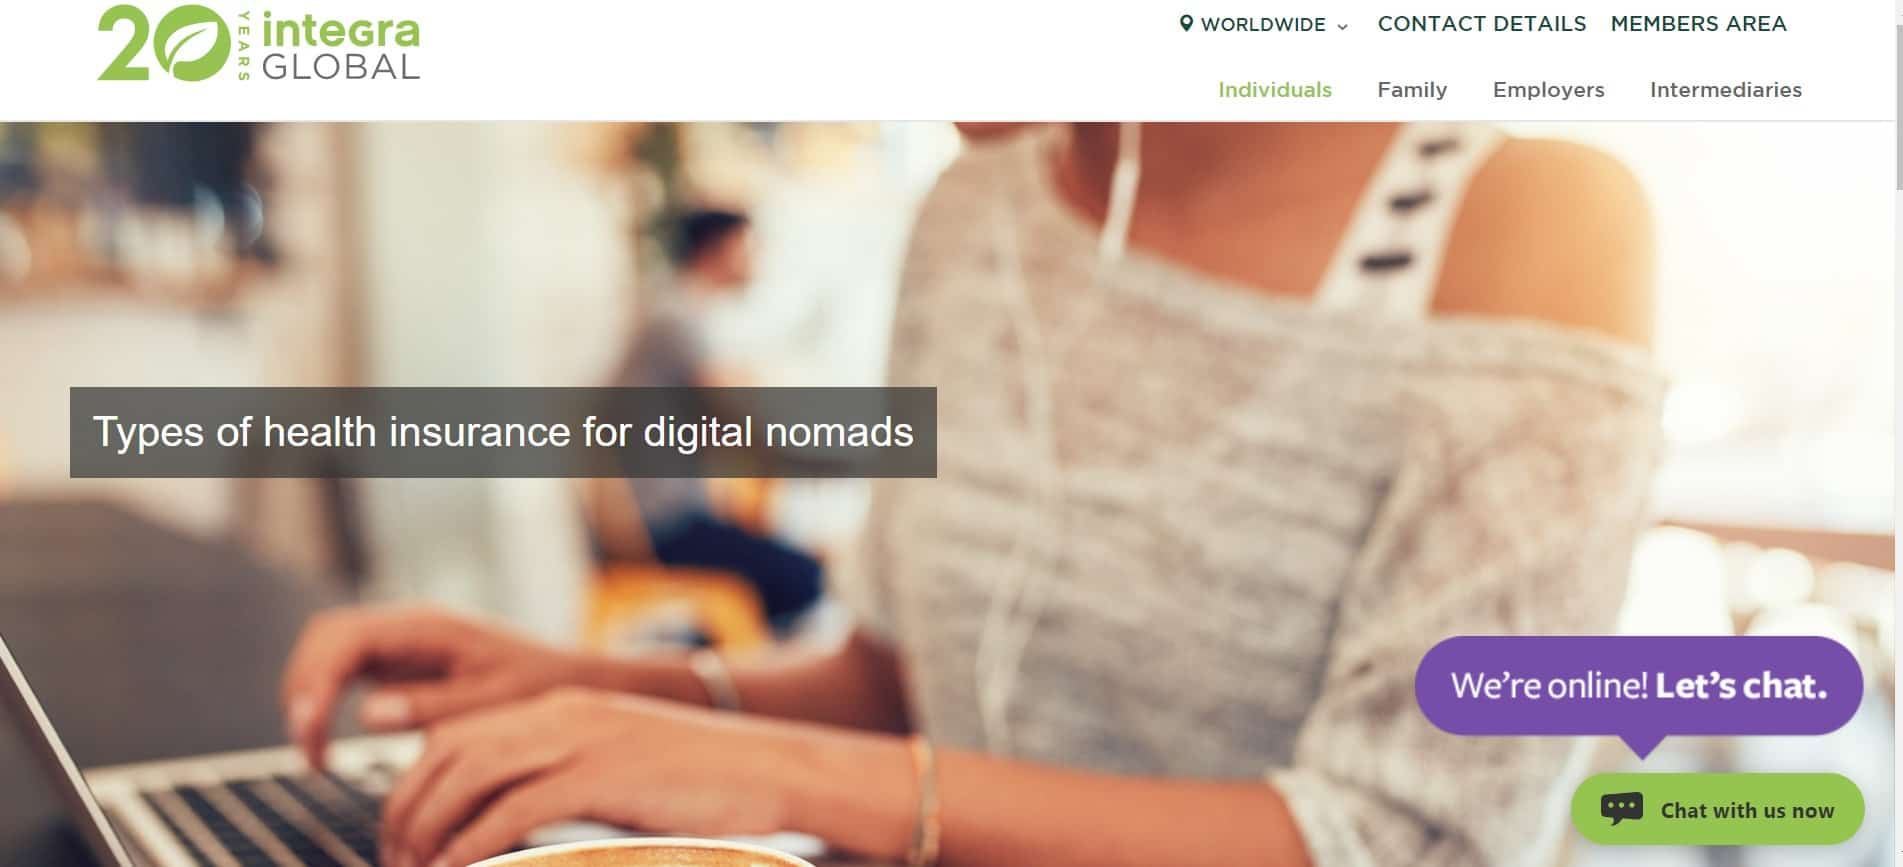 6 Best Digital Nomad Insurance Plans - (COMPARISON 2019)